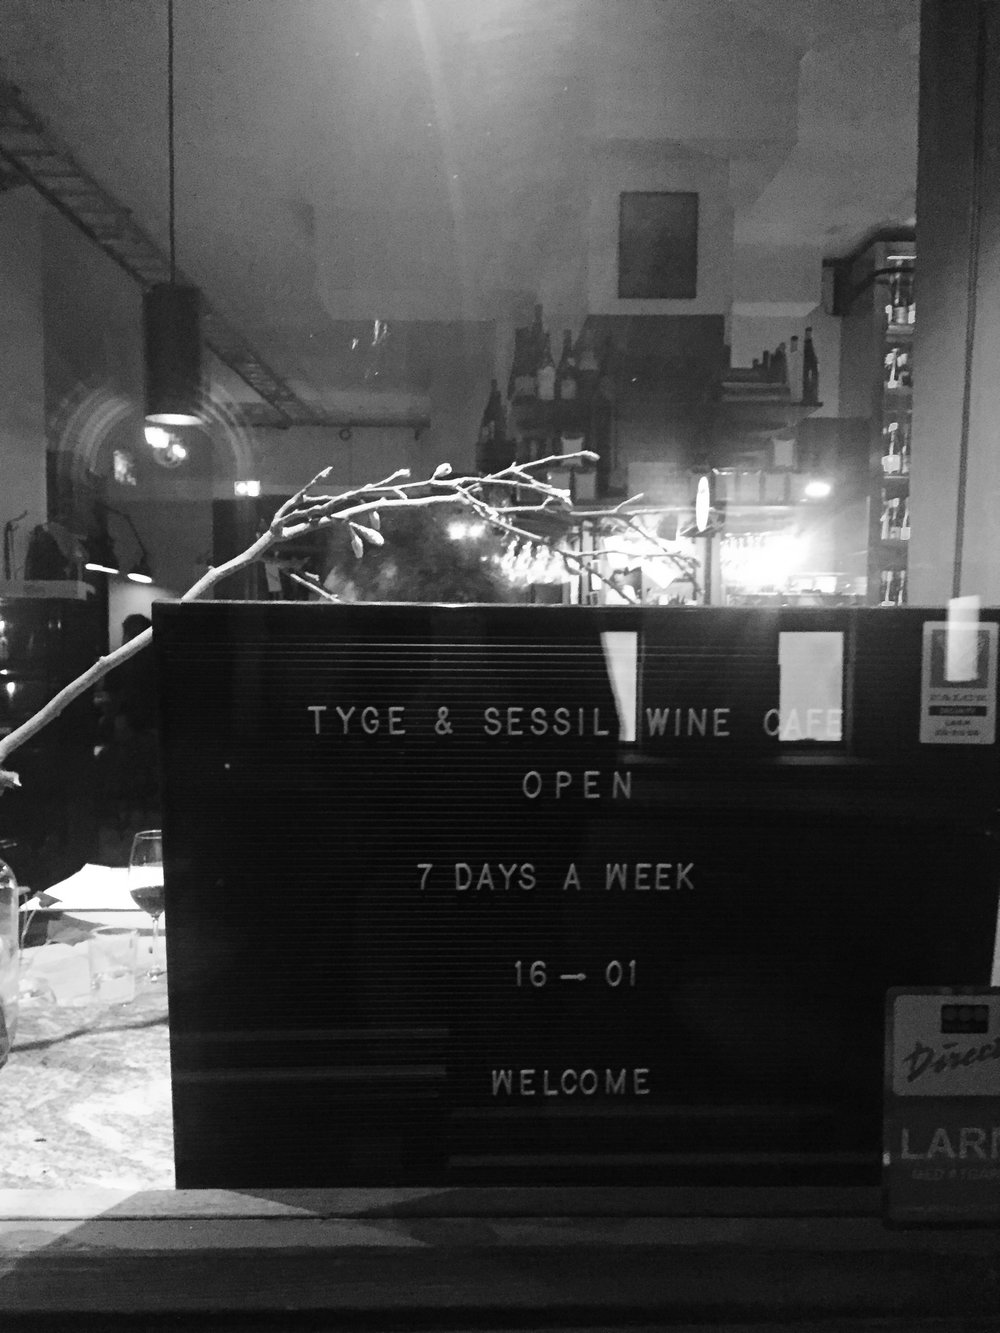 Tygge and Sessil wine bar.